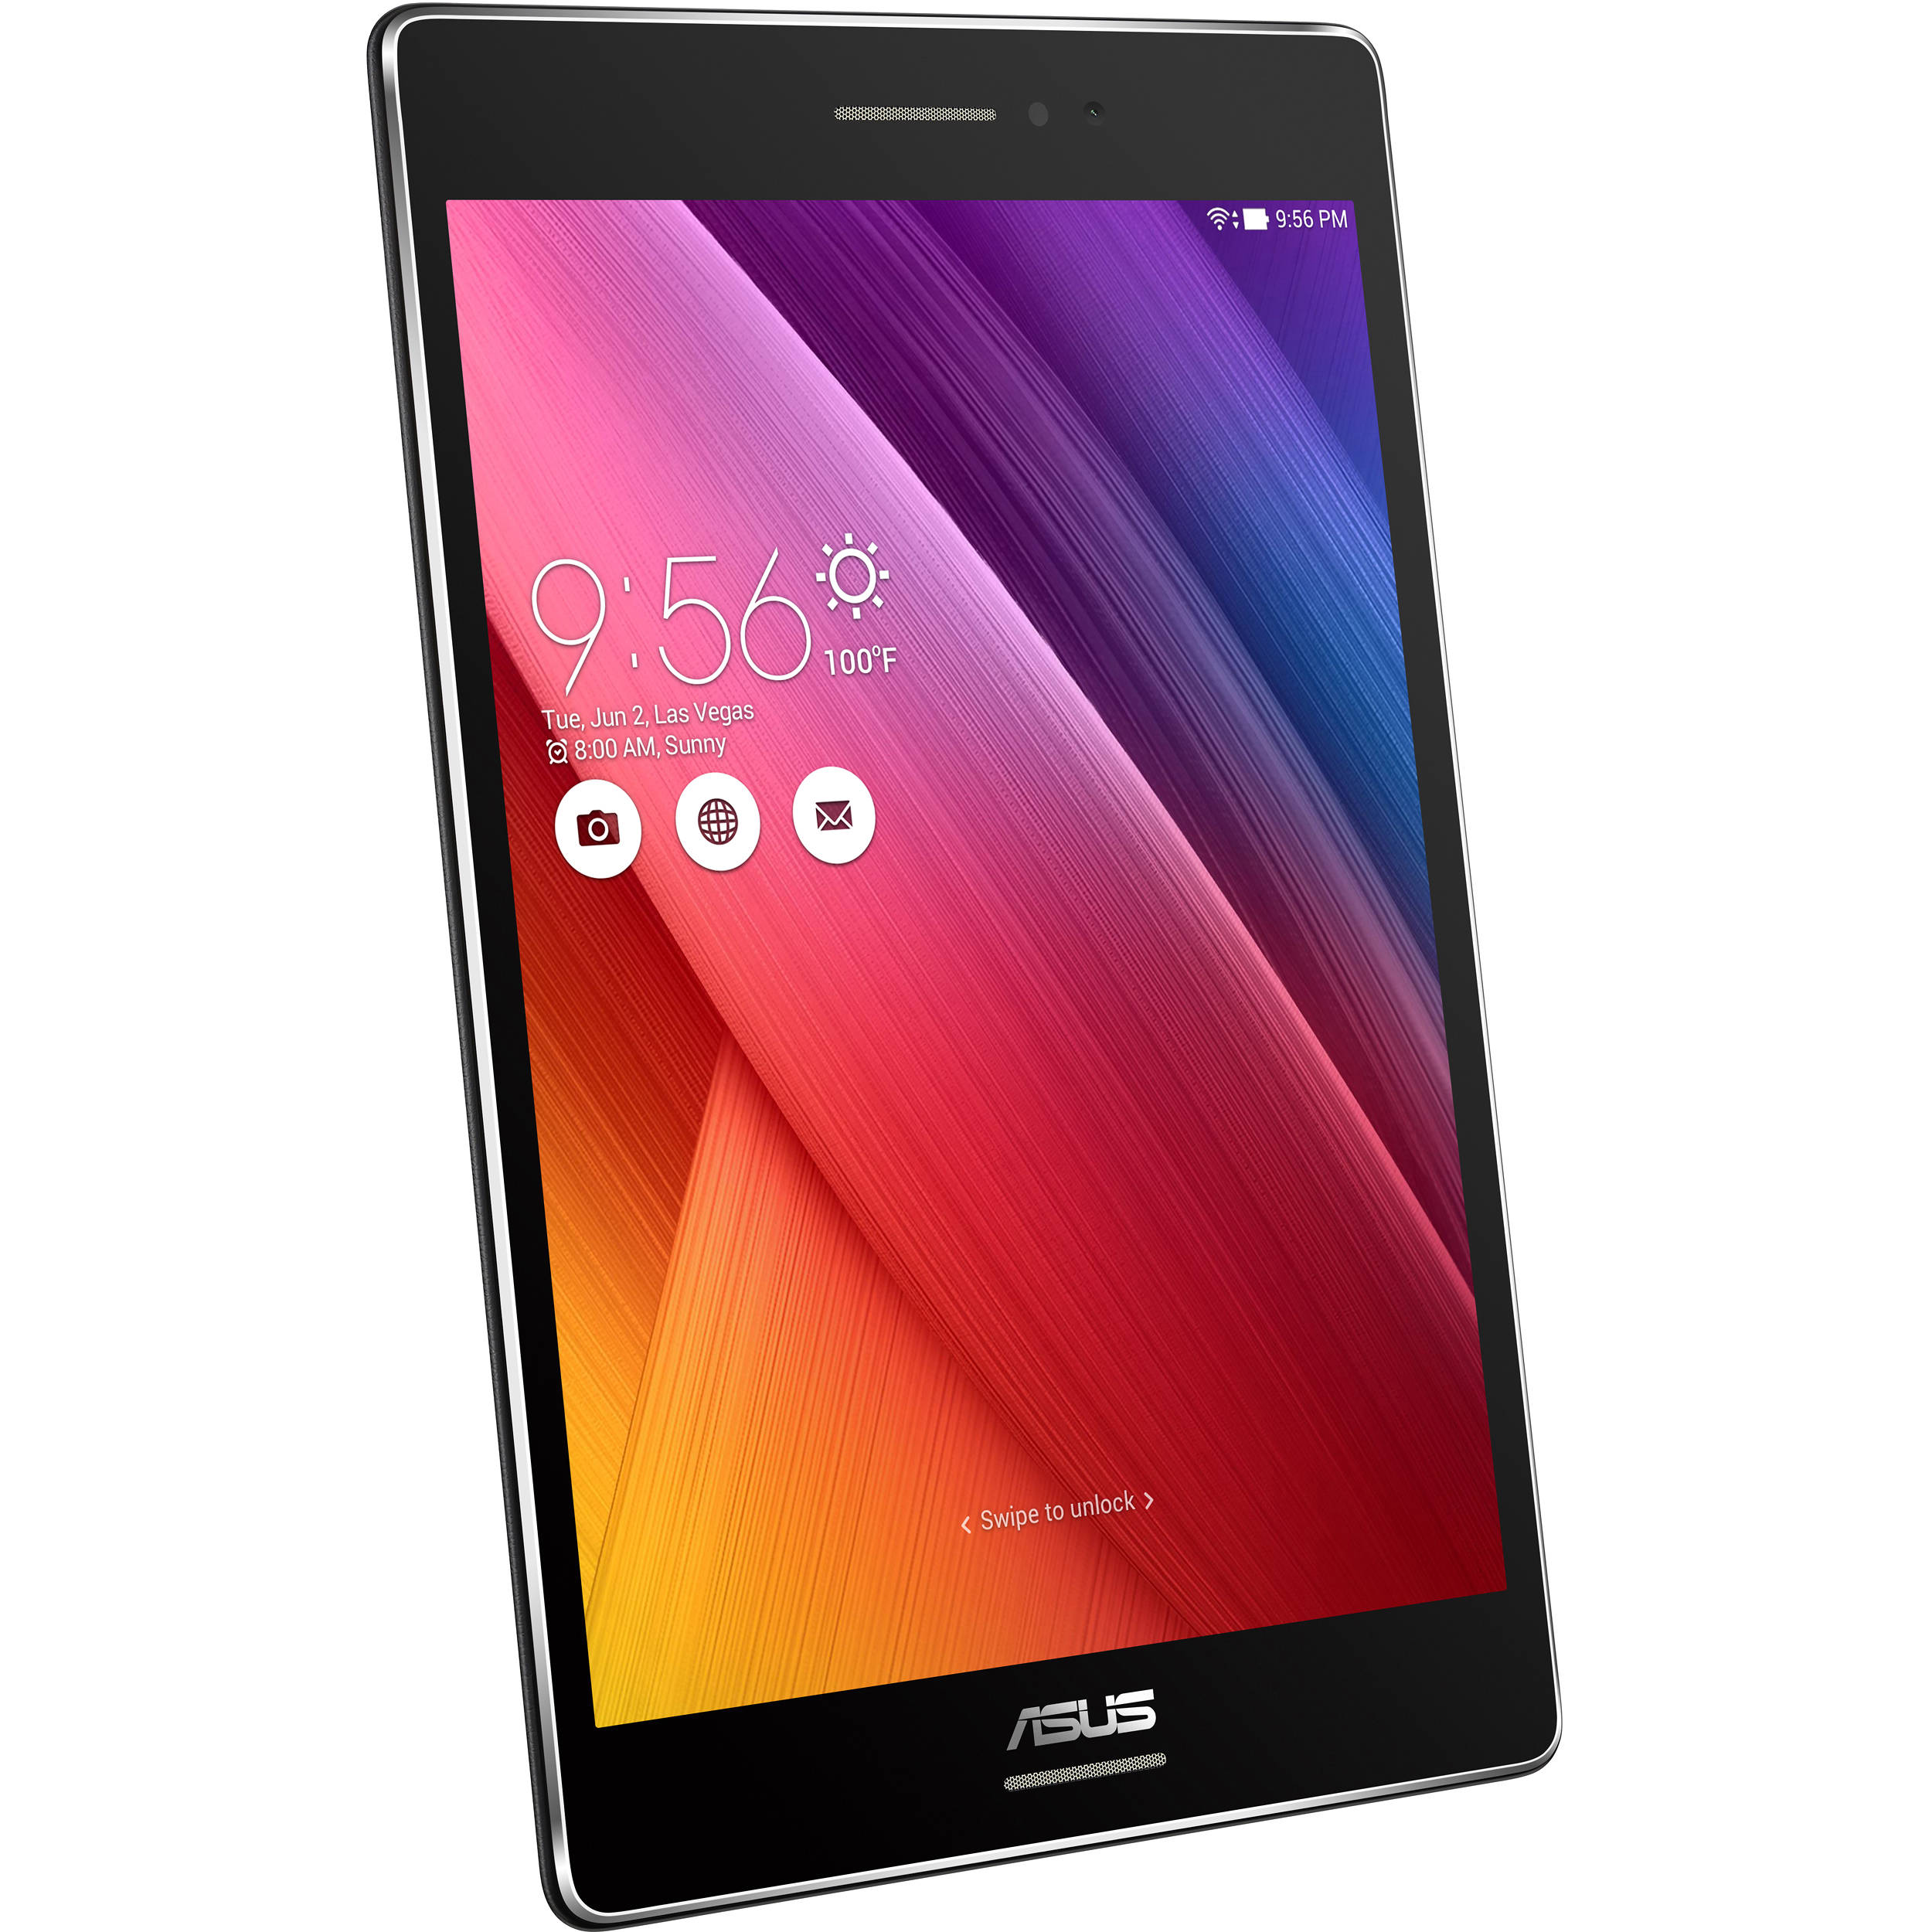 Asus 64gb z580ca c1 zenpad s 80 wi fi tablet z580ca c1 bk asus 64gb z580ca c1 zenpad s 80 wi fi tablet black keyboard keysfo Image collections